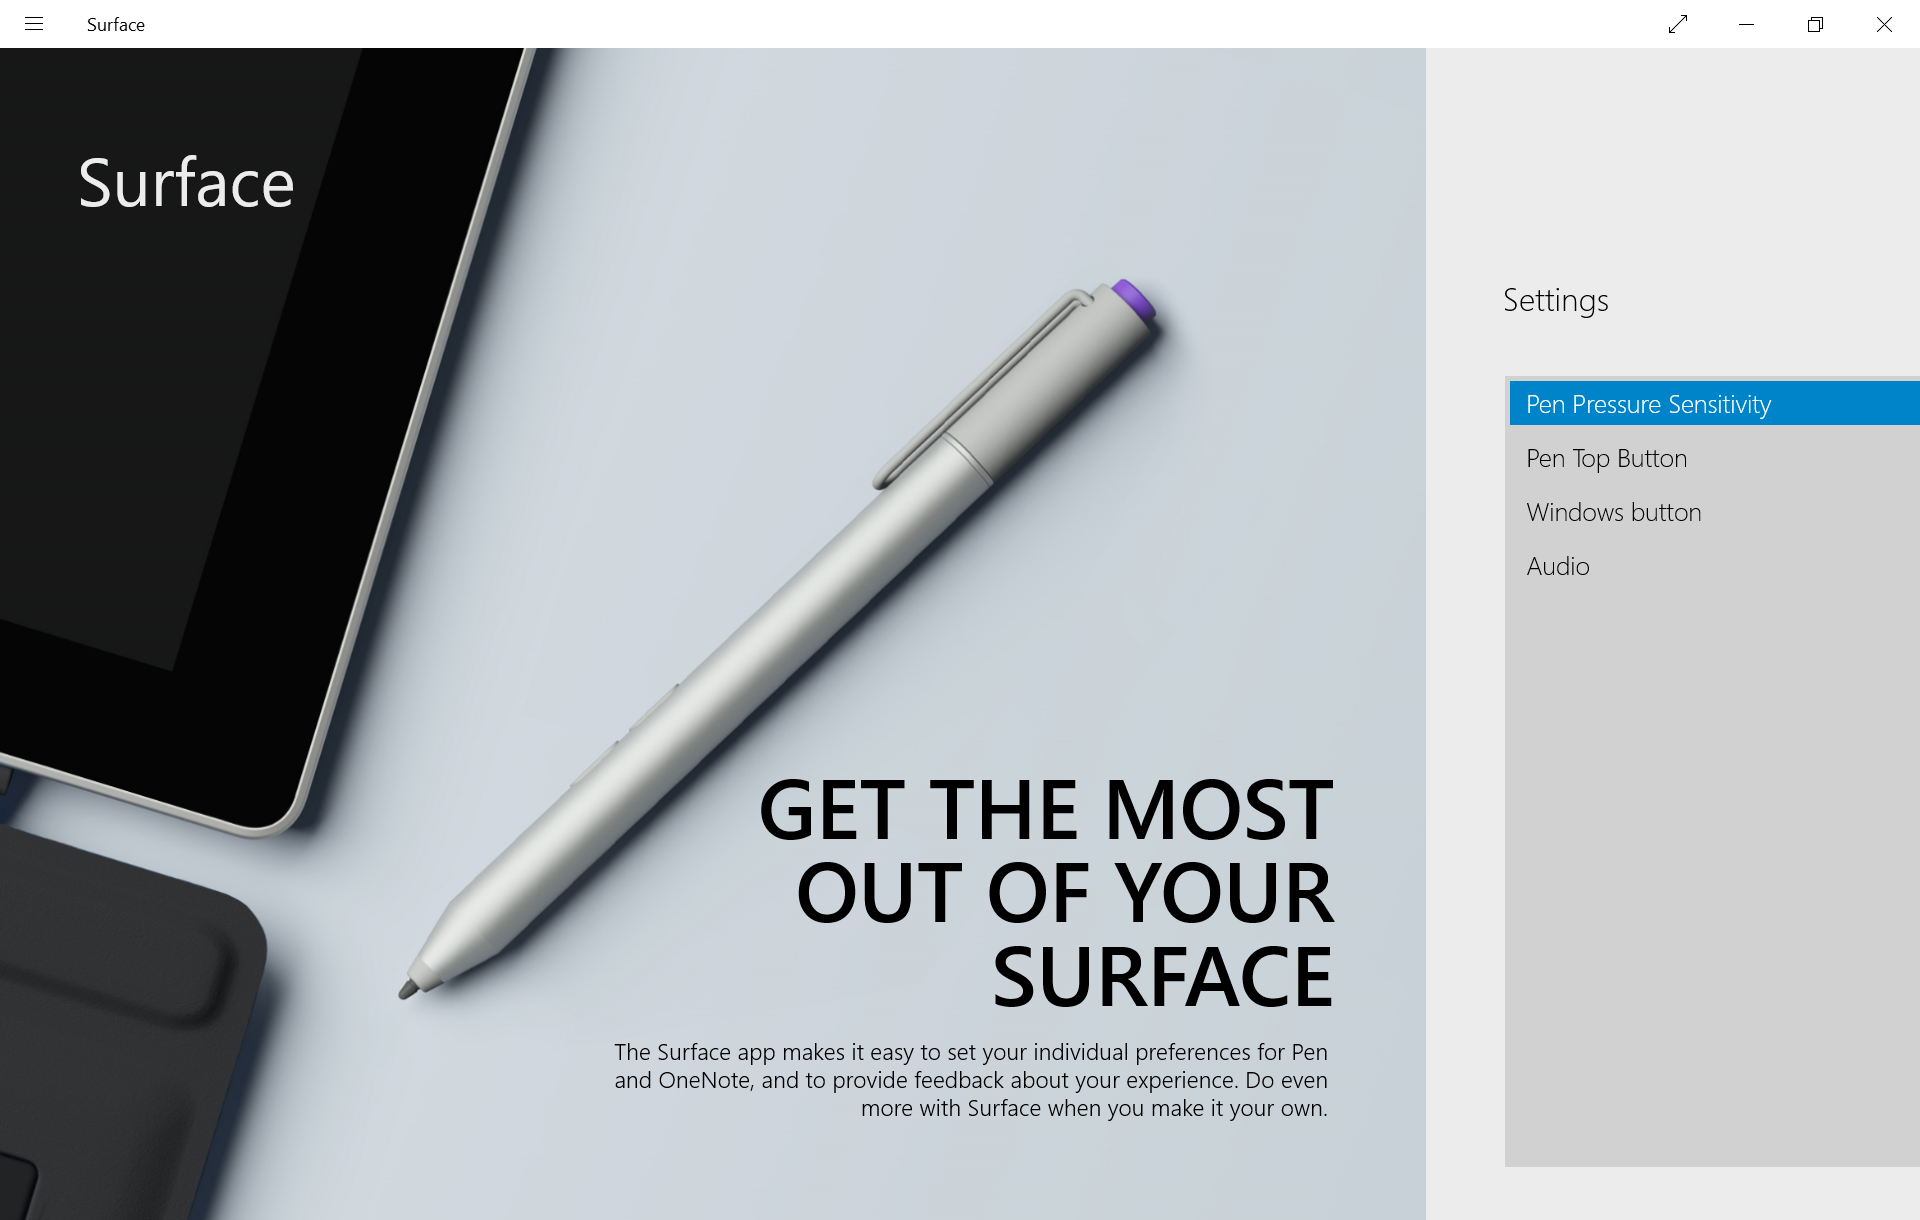 Digital Inking gets a Promotion - The Windows 10 Review: The Old